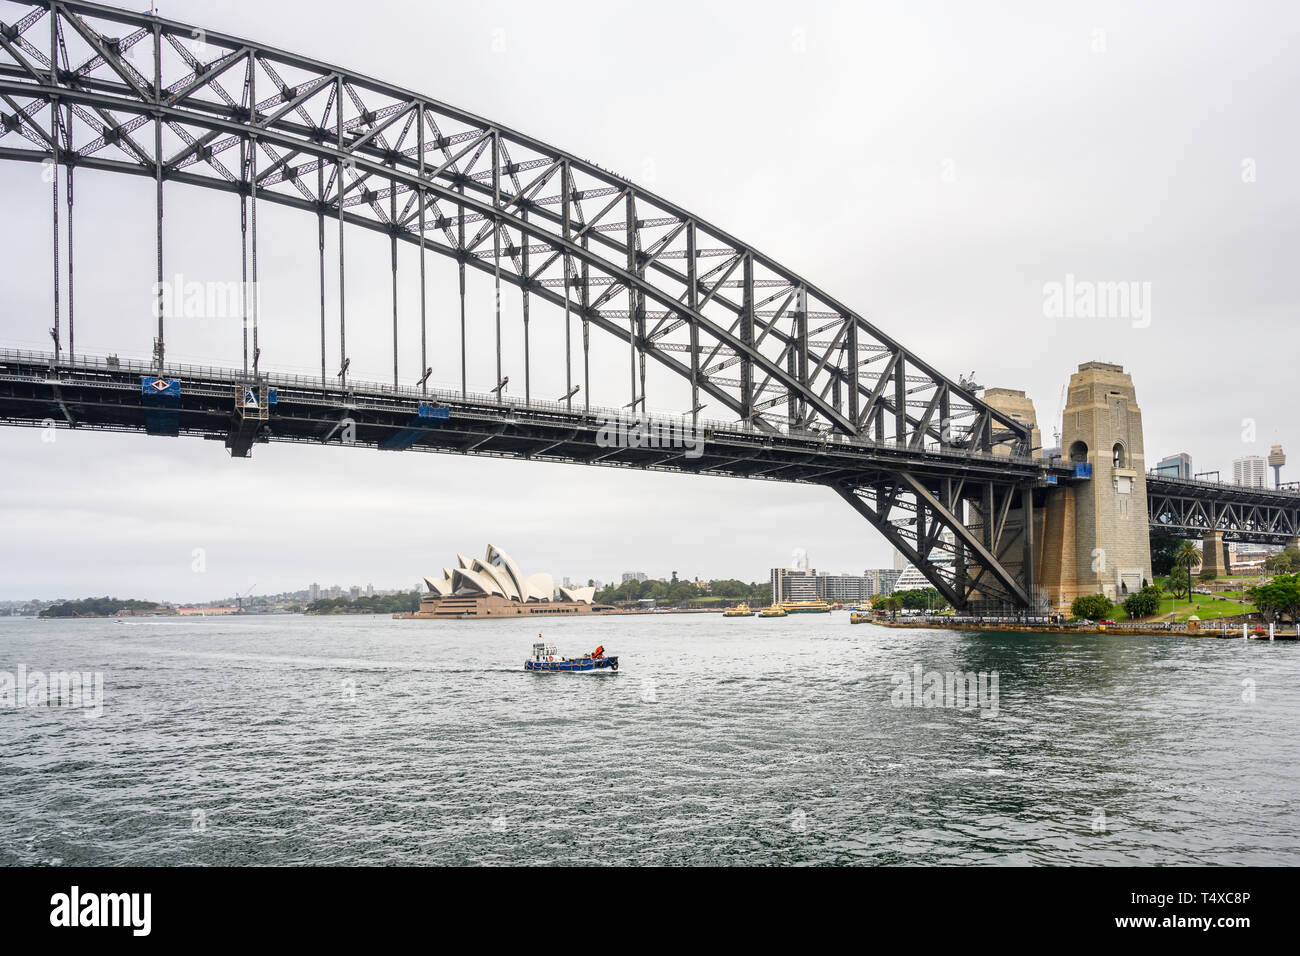 Sydney Harbour Bridge carries car, train, bicycle and pedestrian traffic between Sydney Central Business District (CBD) and the North Shore. Stock Photo